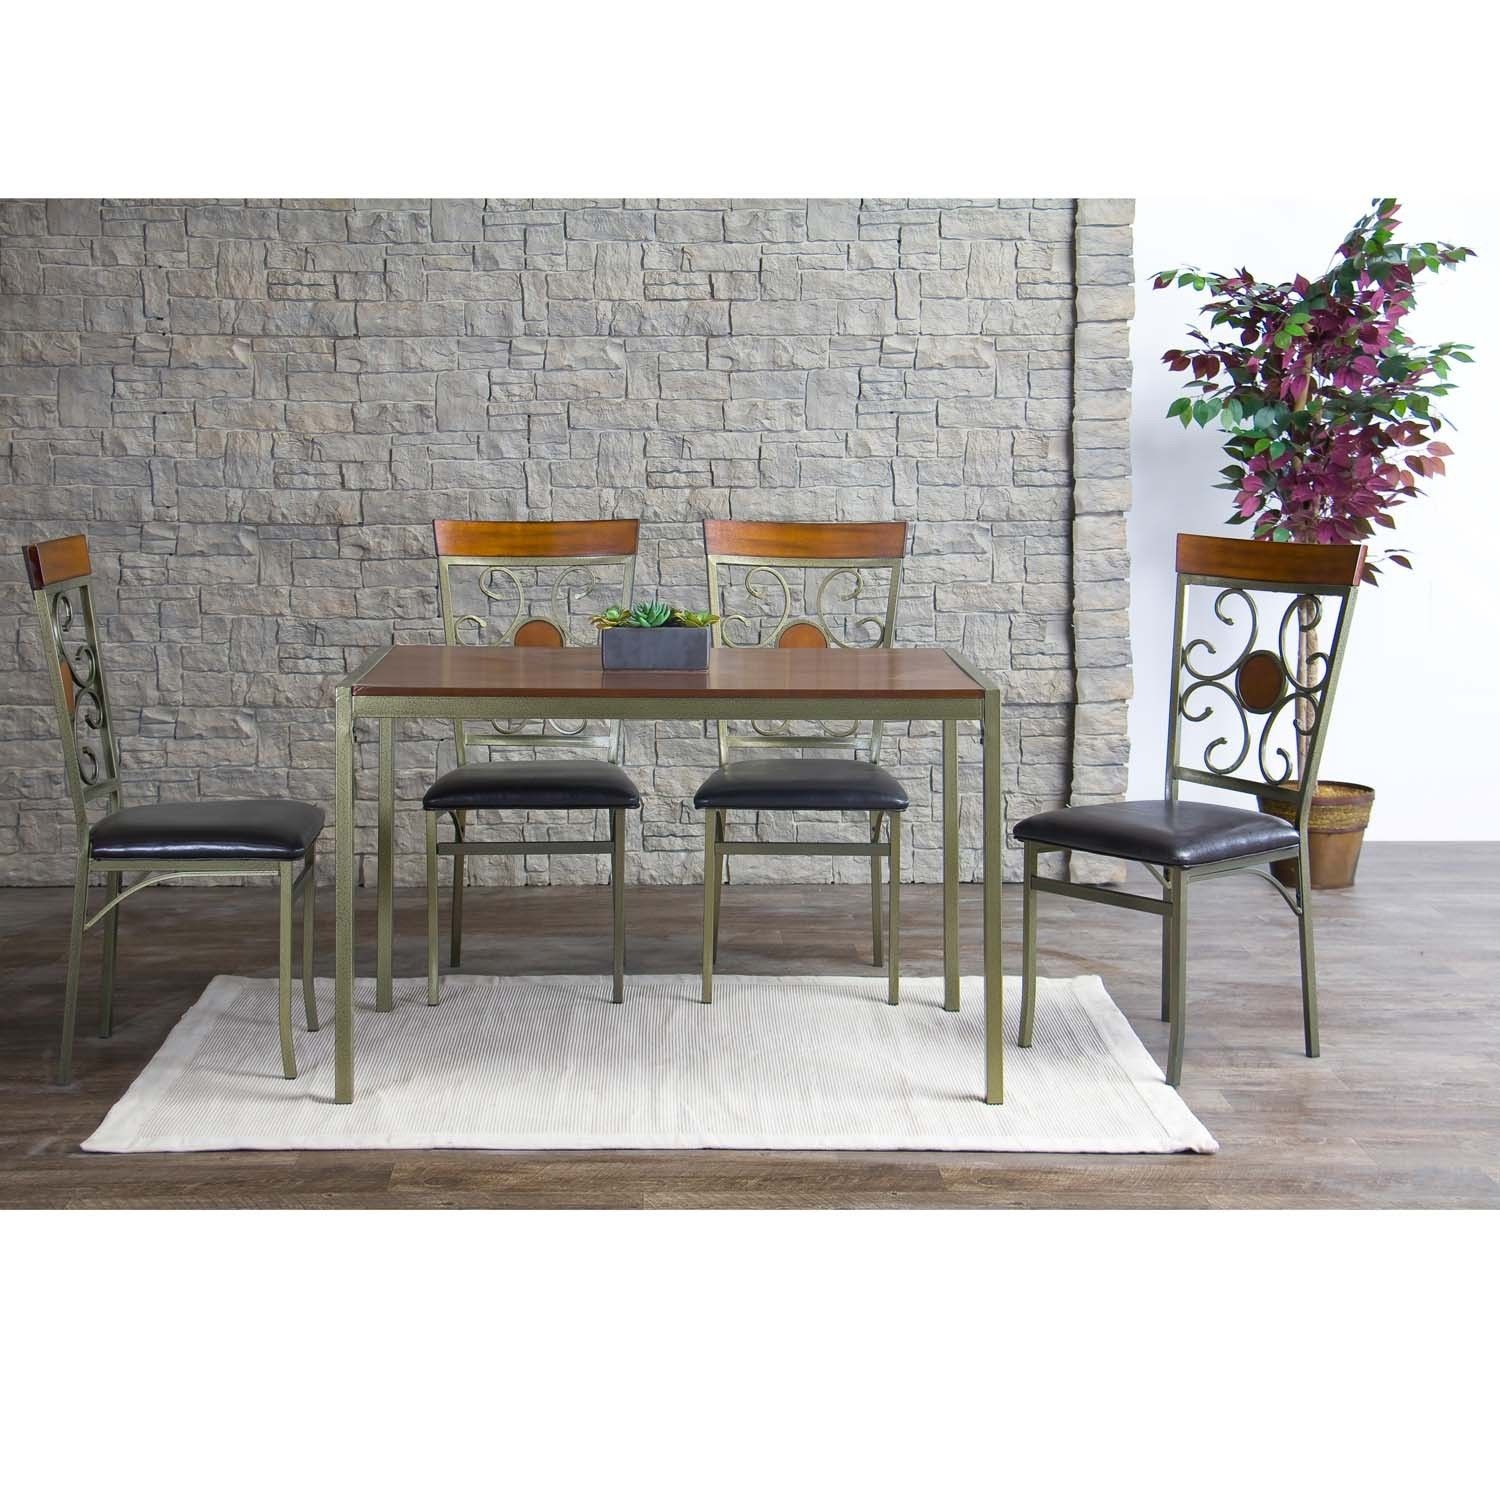 Adding A Dining Room Addition Baxton Studio Modica Wood Metal Contemporary Dining Table